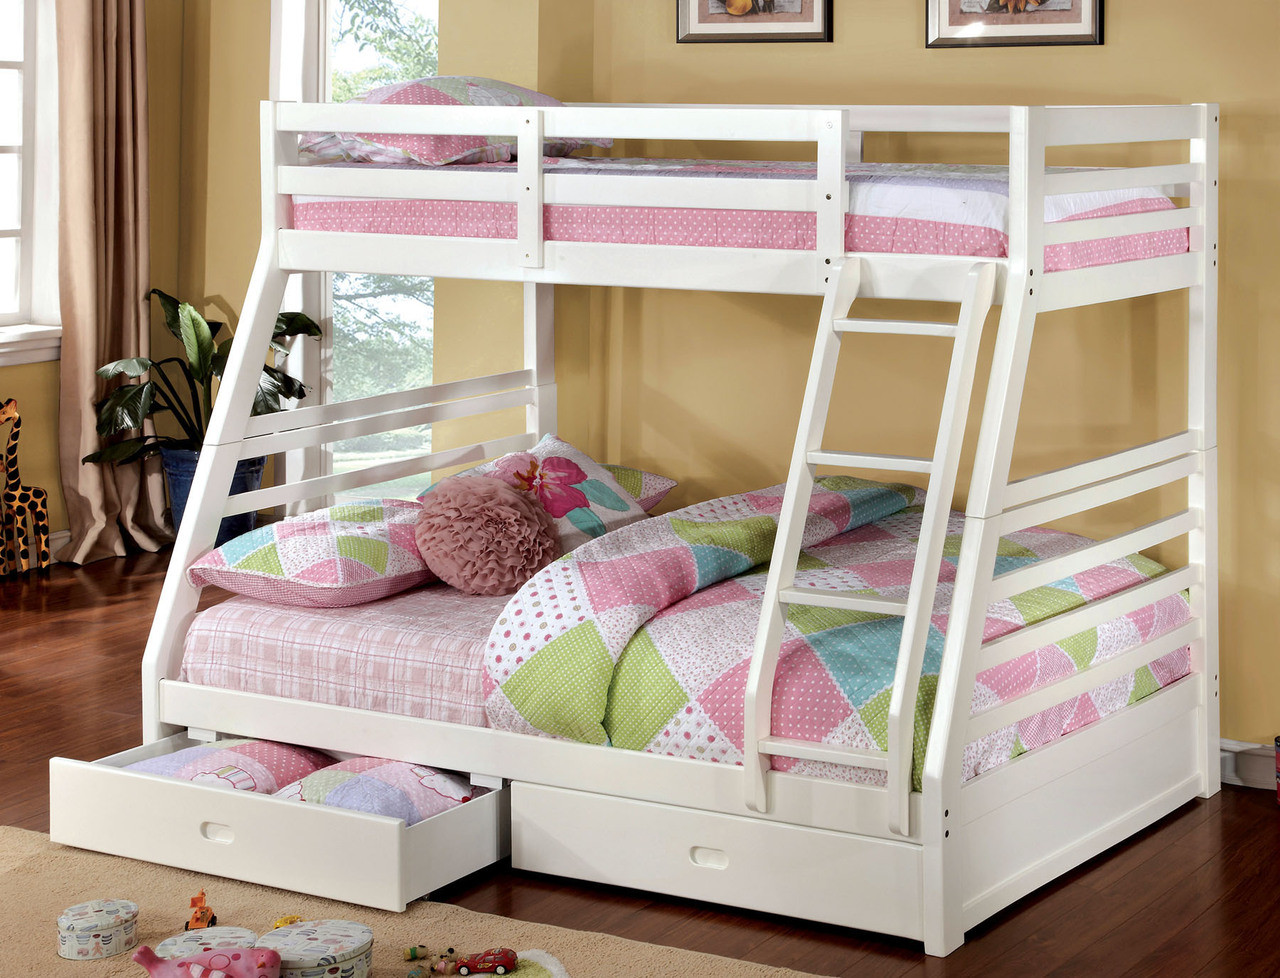 Twin bunk beds white - White Wood Twin Over Full Bunk Bed With Drawers